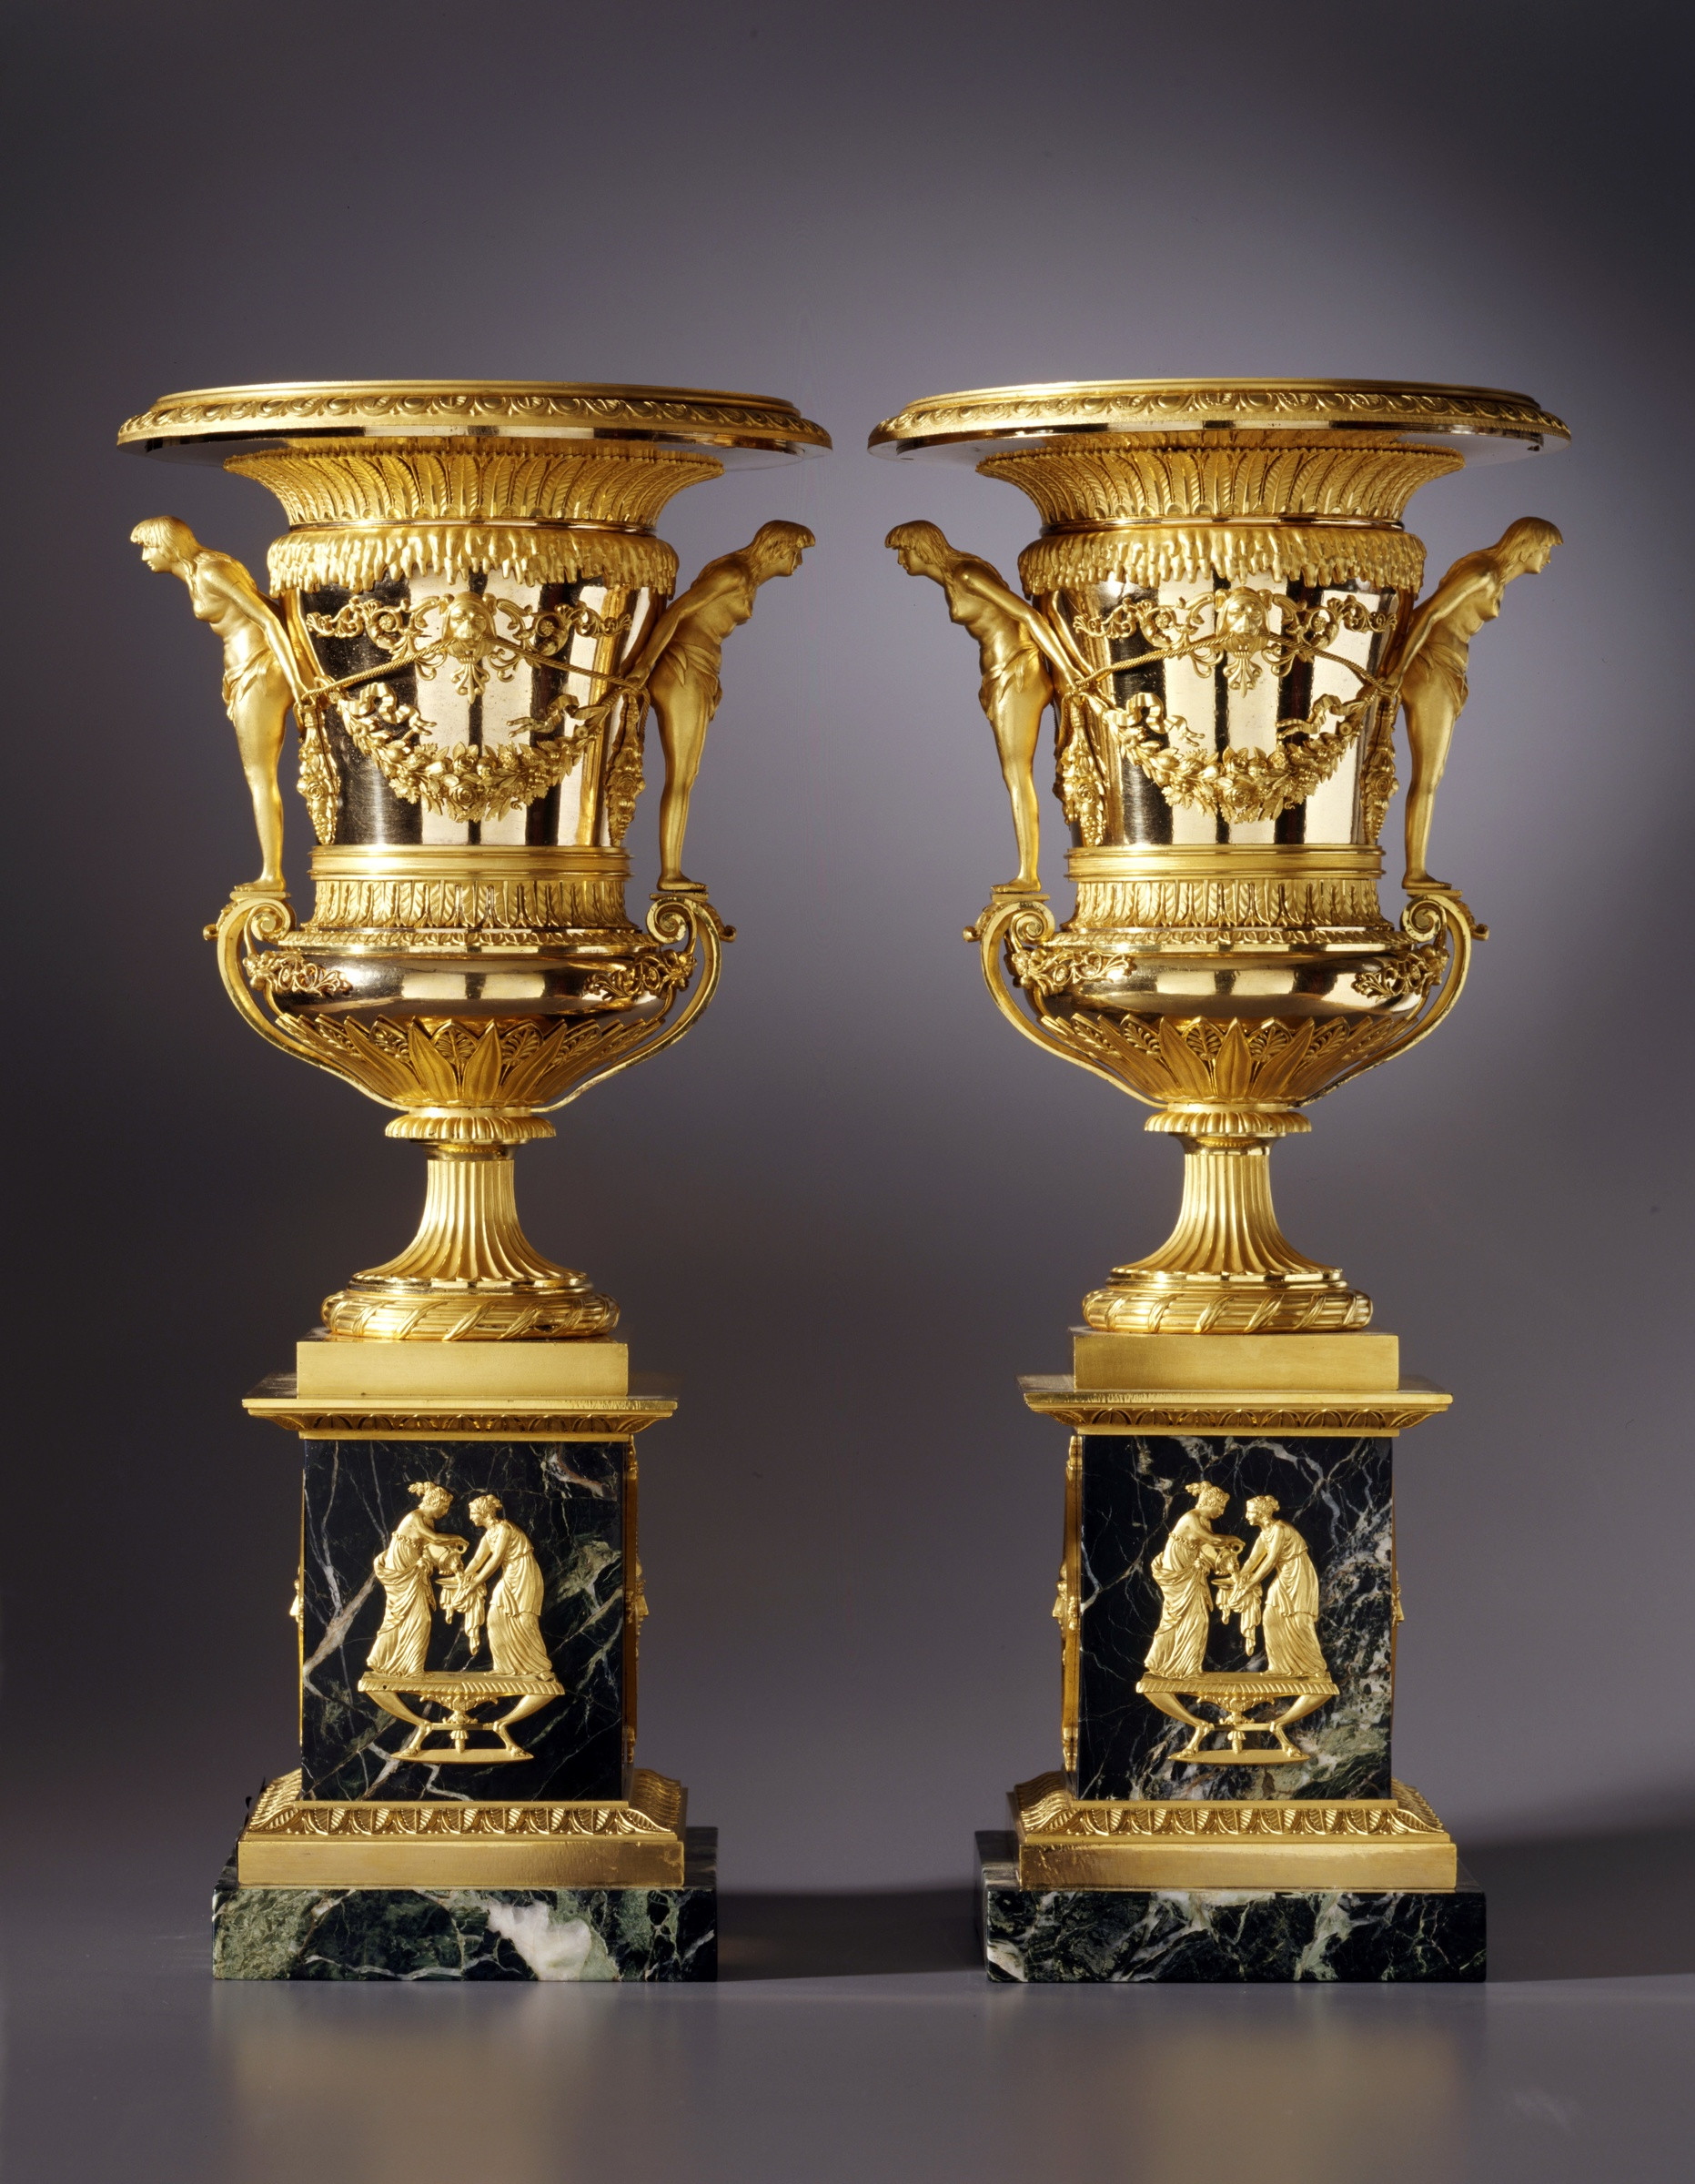 glass vase manufacturers of friedrich bergenfeldt attributed to a pair of large sized st within a pair of large sized st petersburg empire vases attributed to friedrich bergenfeldt